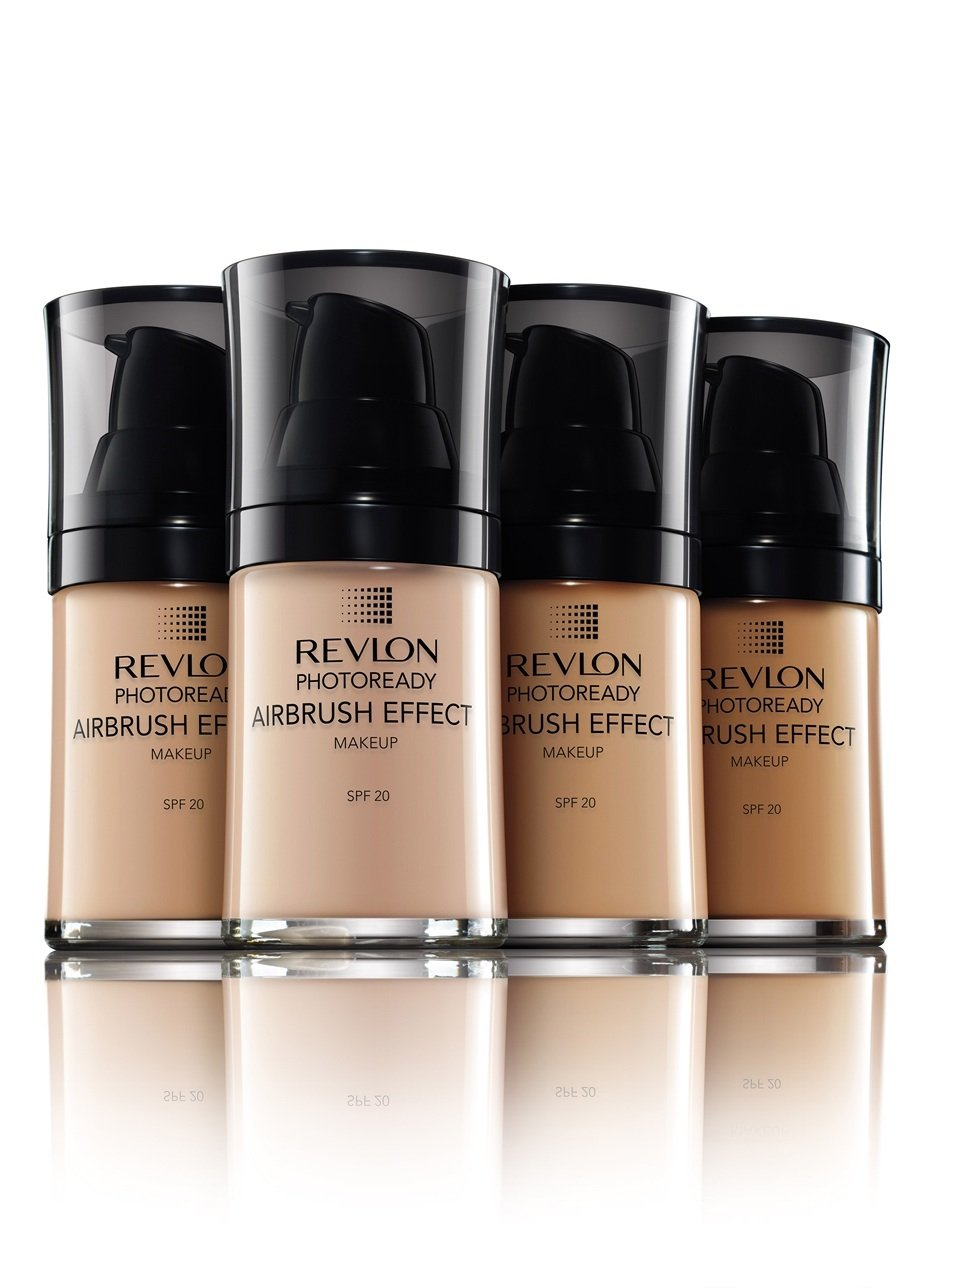 Revlon PhotoReady Airbrush Effect™ Makeup For A Poreless, Airbrushed Look